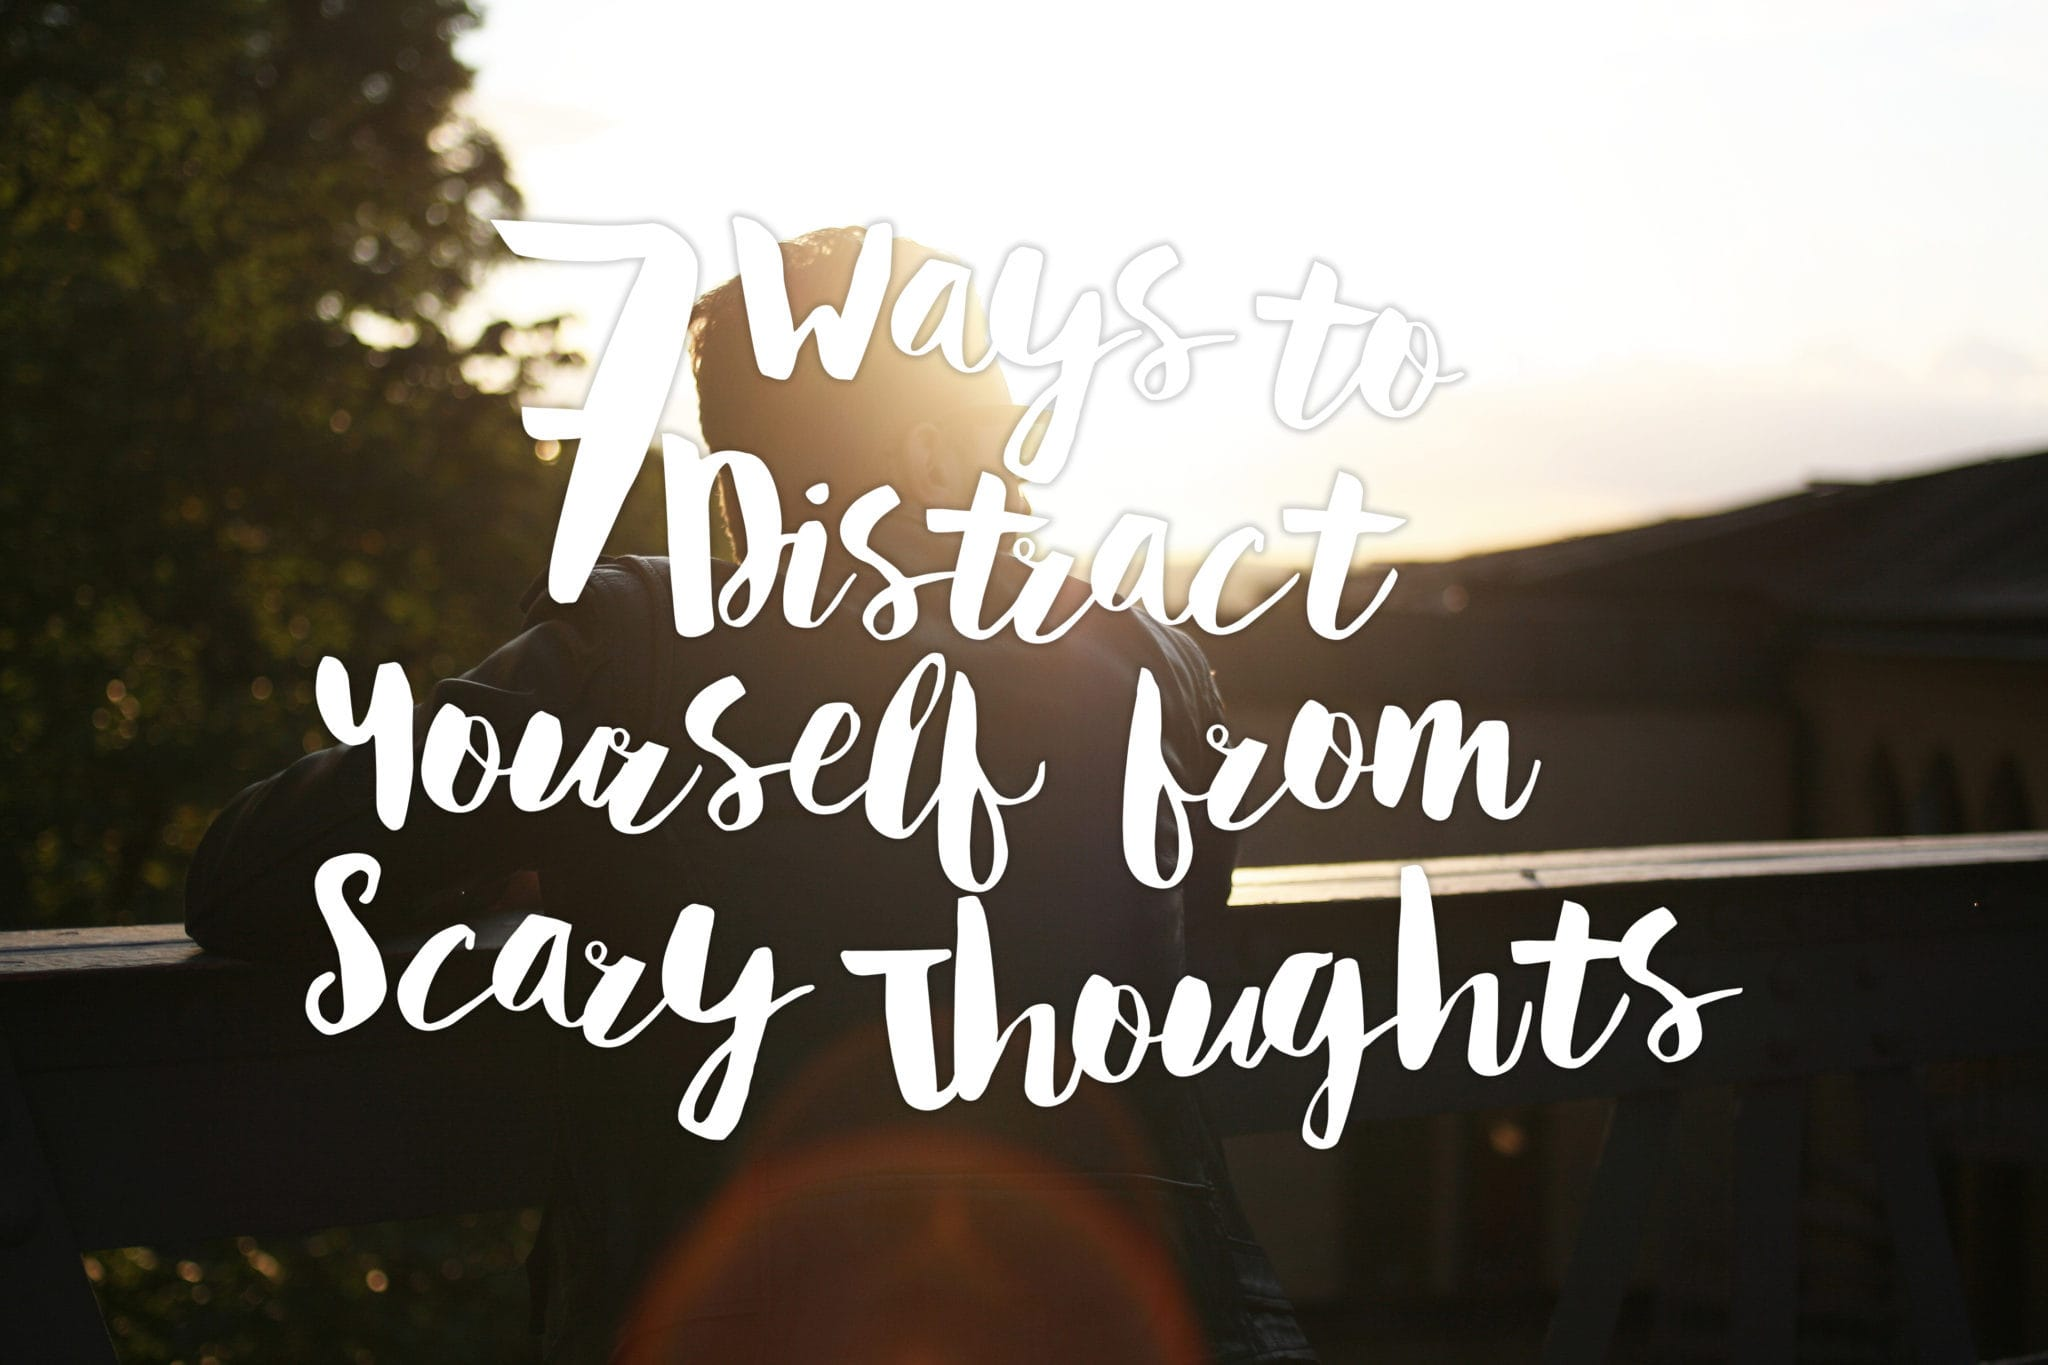 7-ways-to-distract-yourself-from-scary-thoughts-text